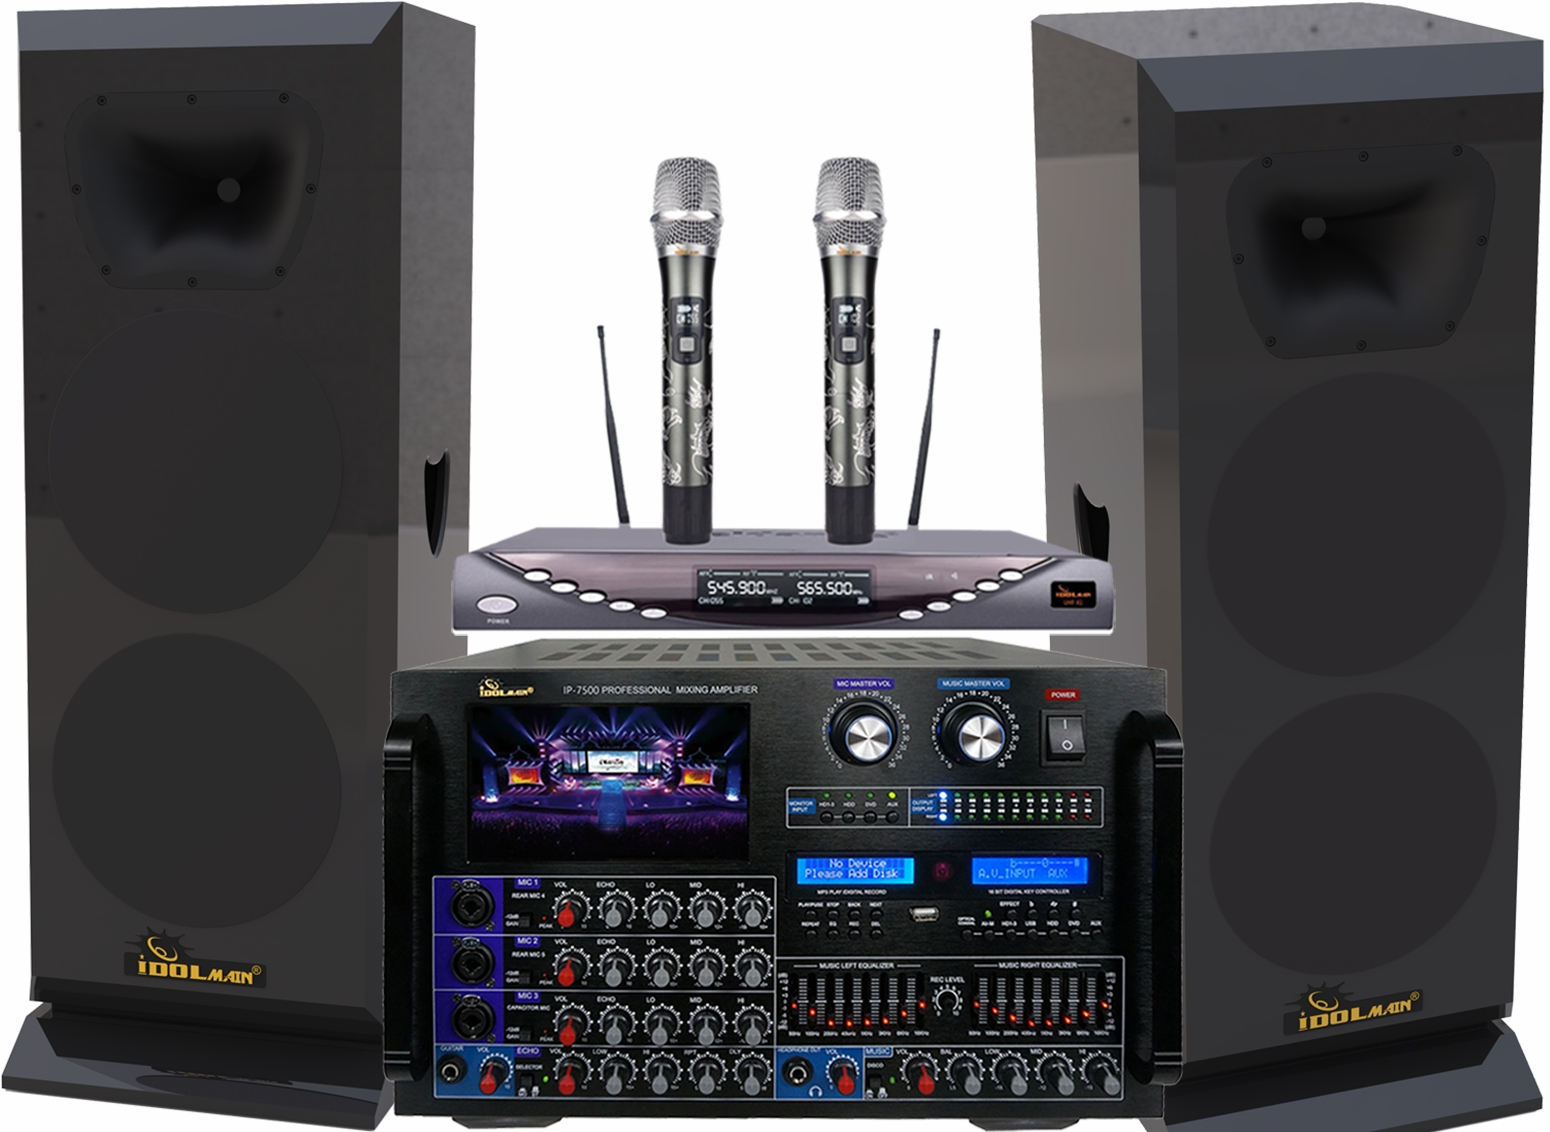 "<font color="" blue"">PACKAGE 10</font>--IDOLmain 3000W High-End Floorstanding Speakers With 8000W Professional Mixing Amplifier & Dual Wireless Microphones"